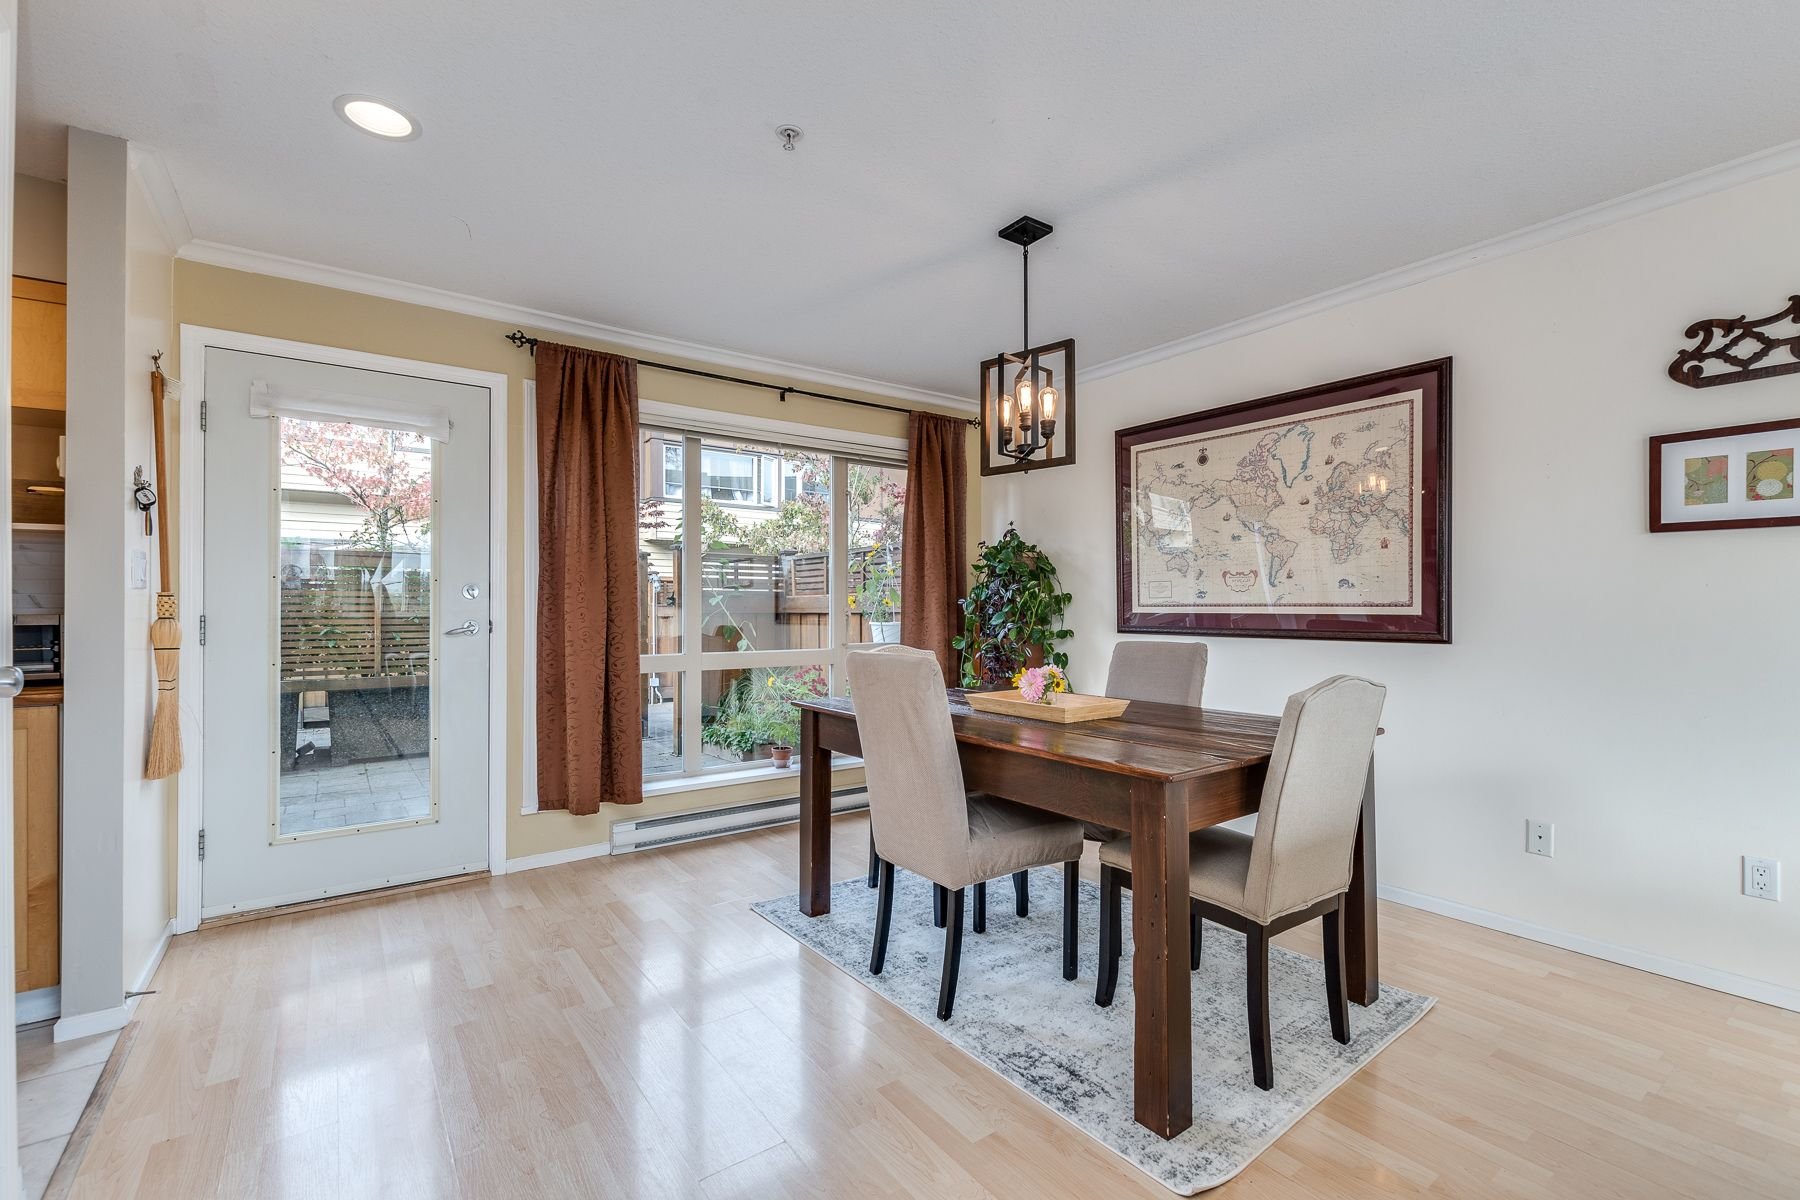 Photo 8: Photos: 7-2389 Charles St in Vancouver: Grandview Woodland Townhouse for sale (Vancouver East)